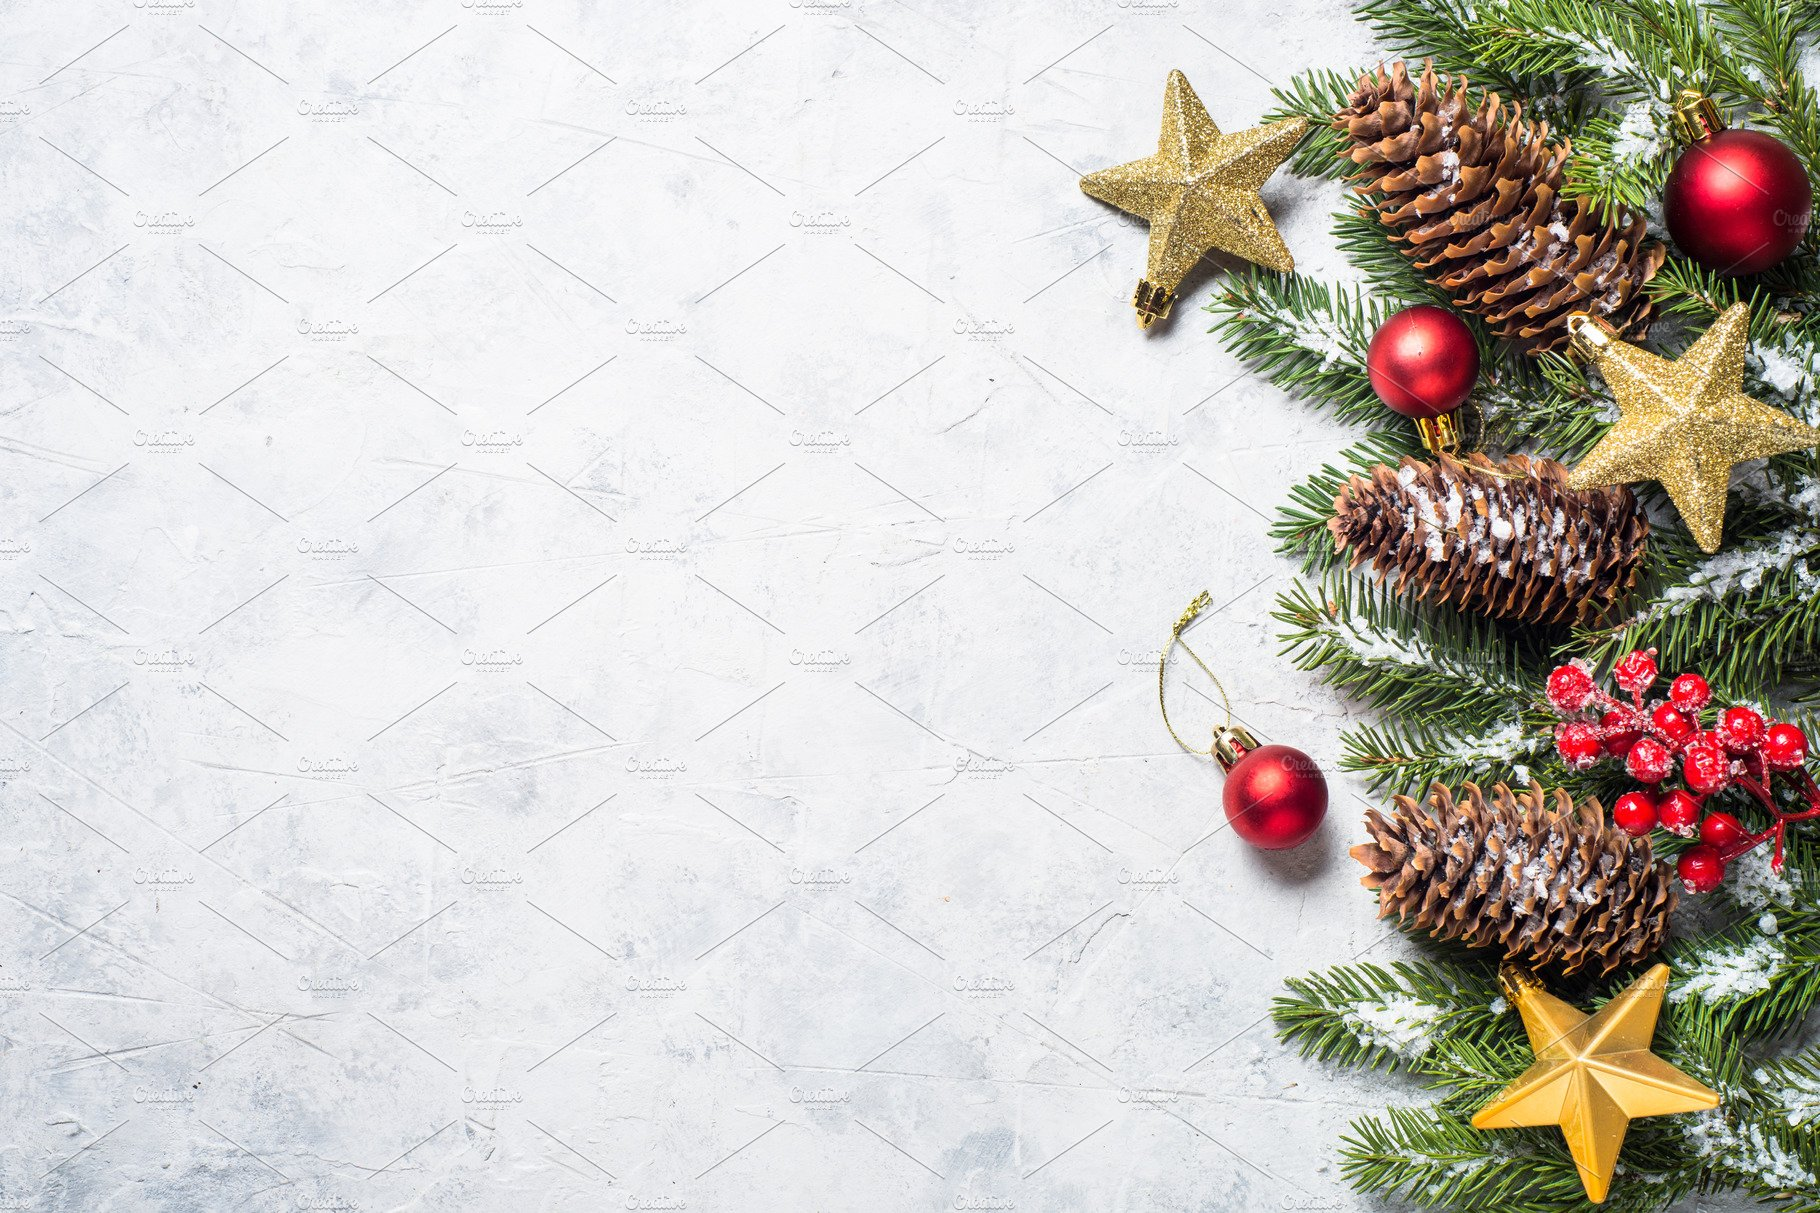 Christmas Holiday Background Photograph By Anna Om: Christmas Background